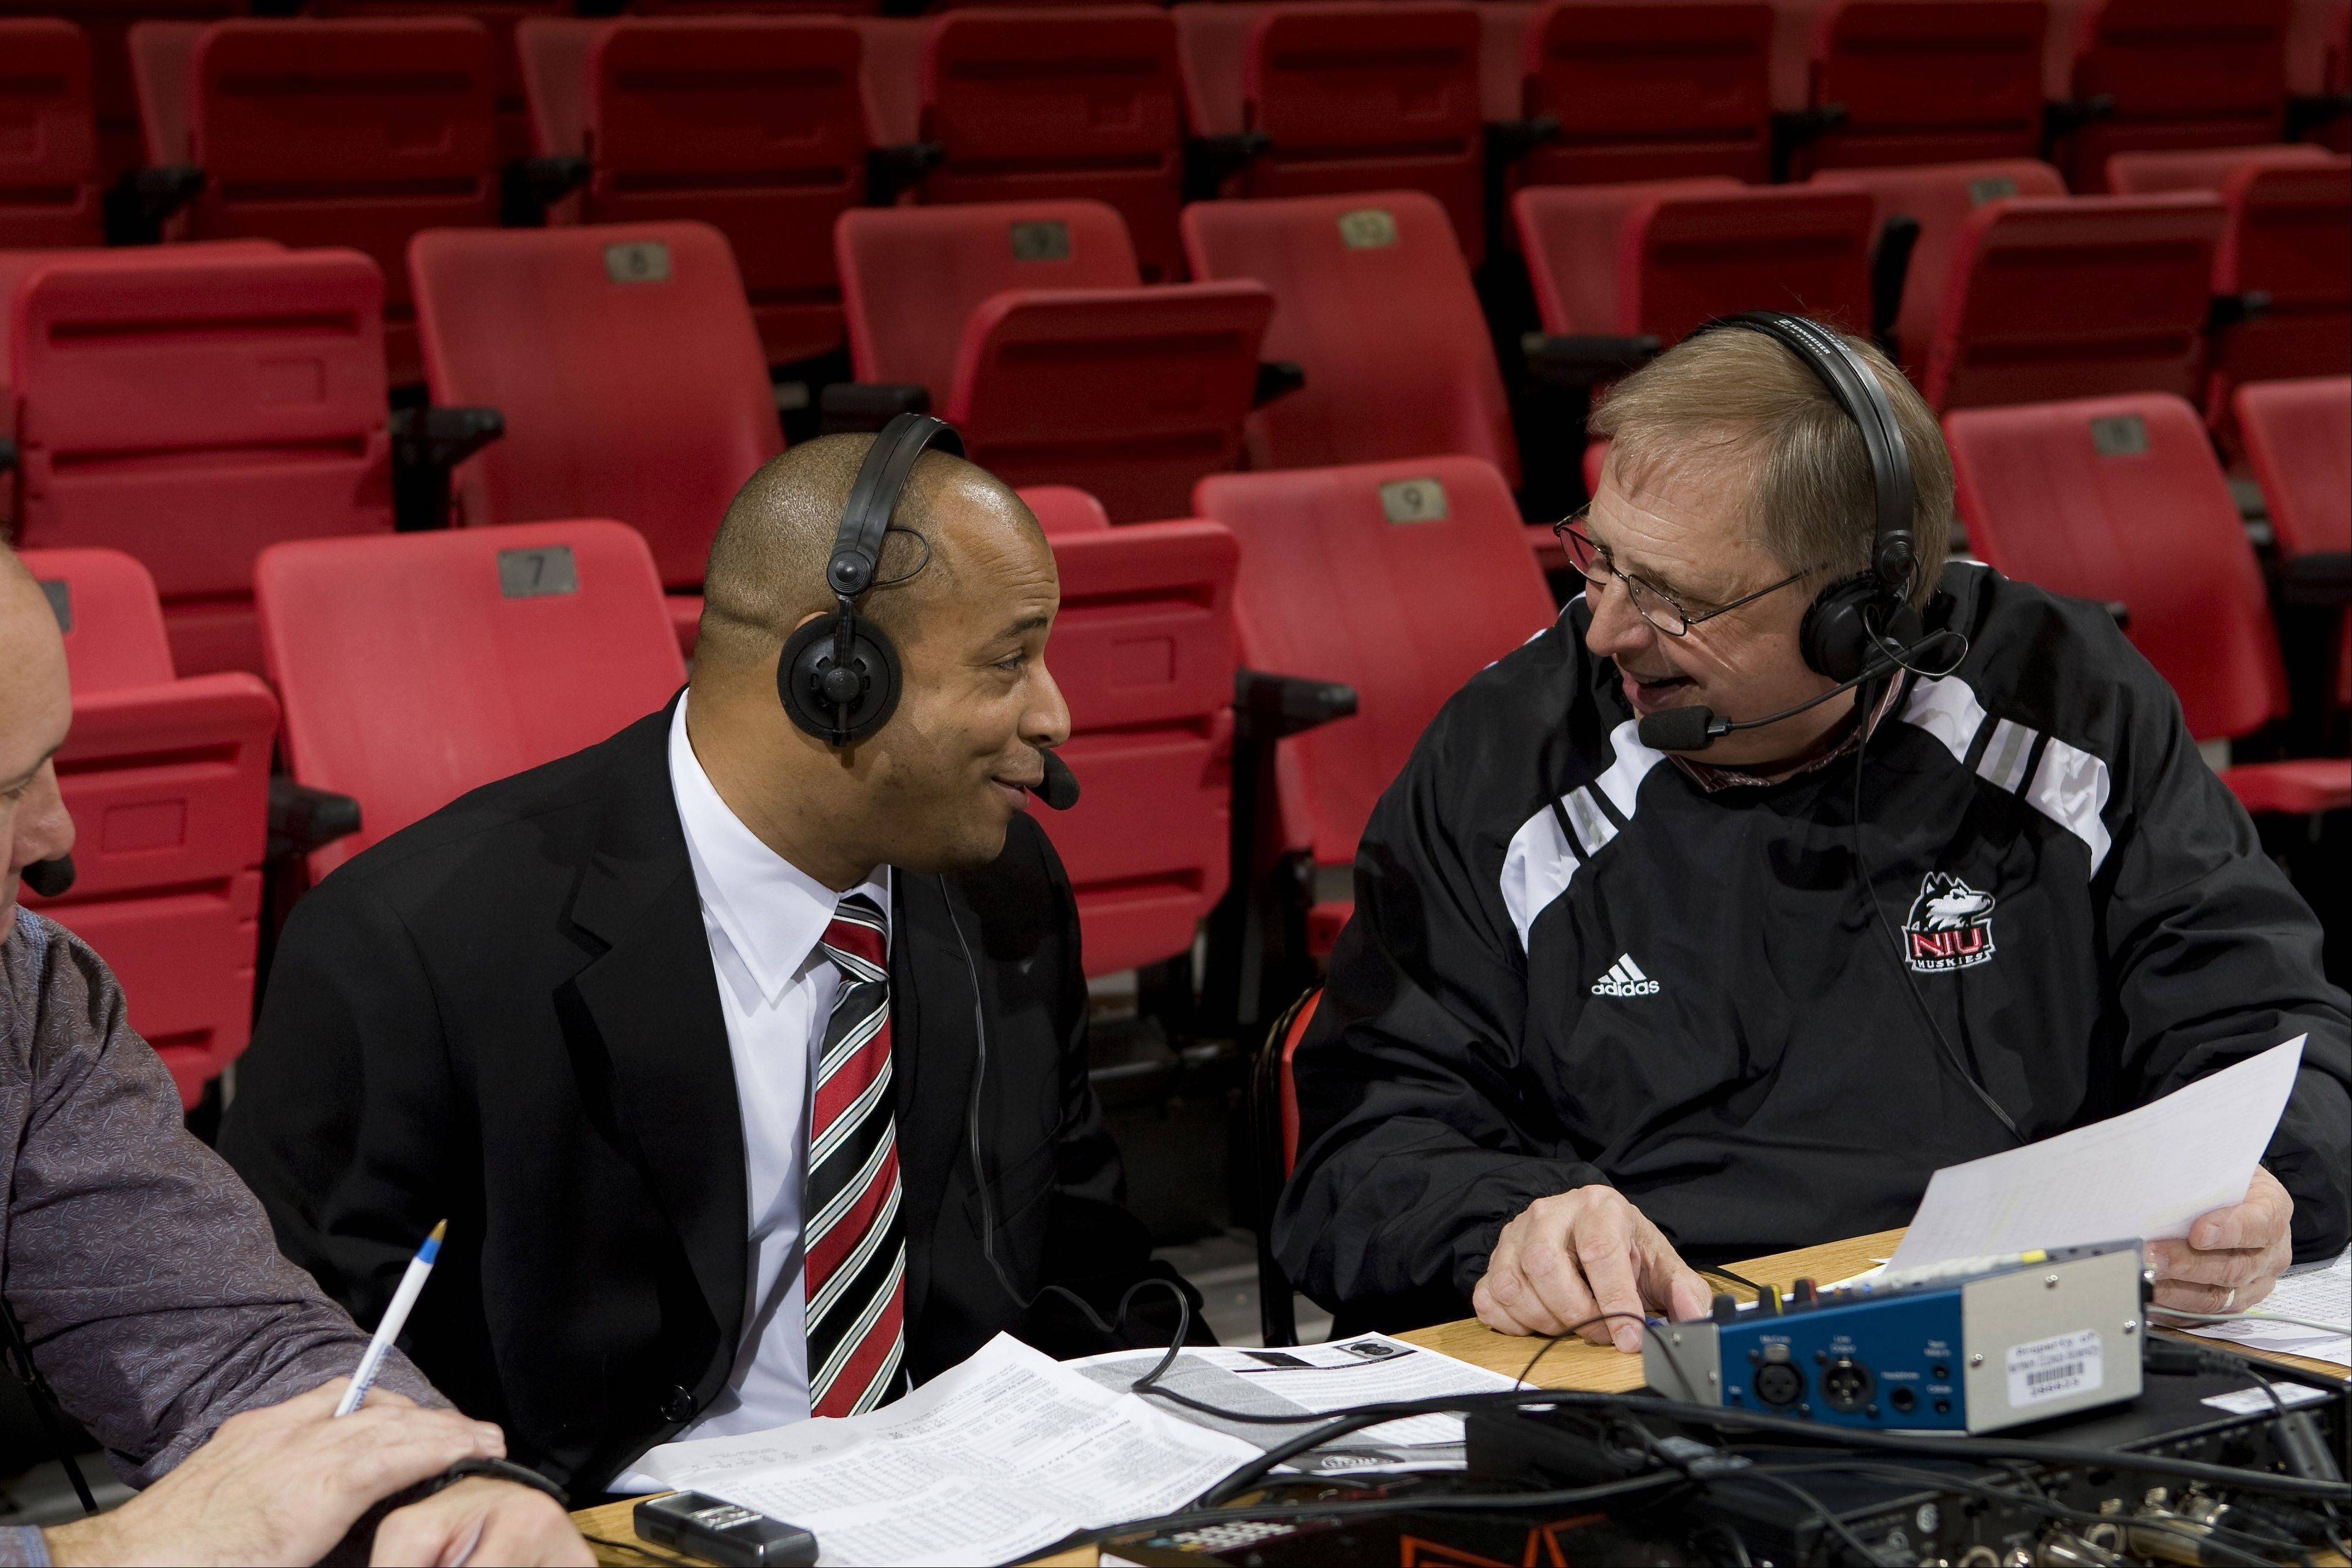 Northern Illinois play-by-play commentator Bill Baker, right, has been calling Huskies football and basketball for 33 years, and Tuesday he'll call his first Orange Bowl game when the Huskies play Florida State.